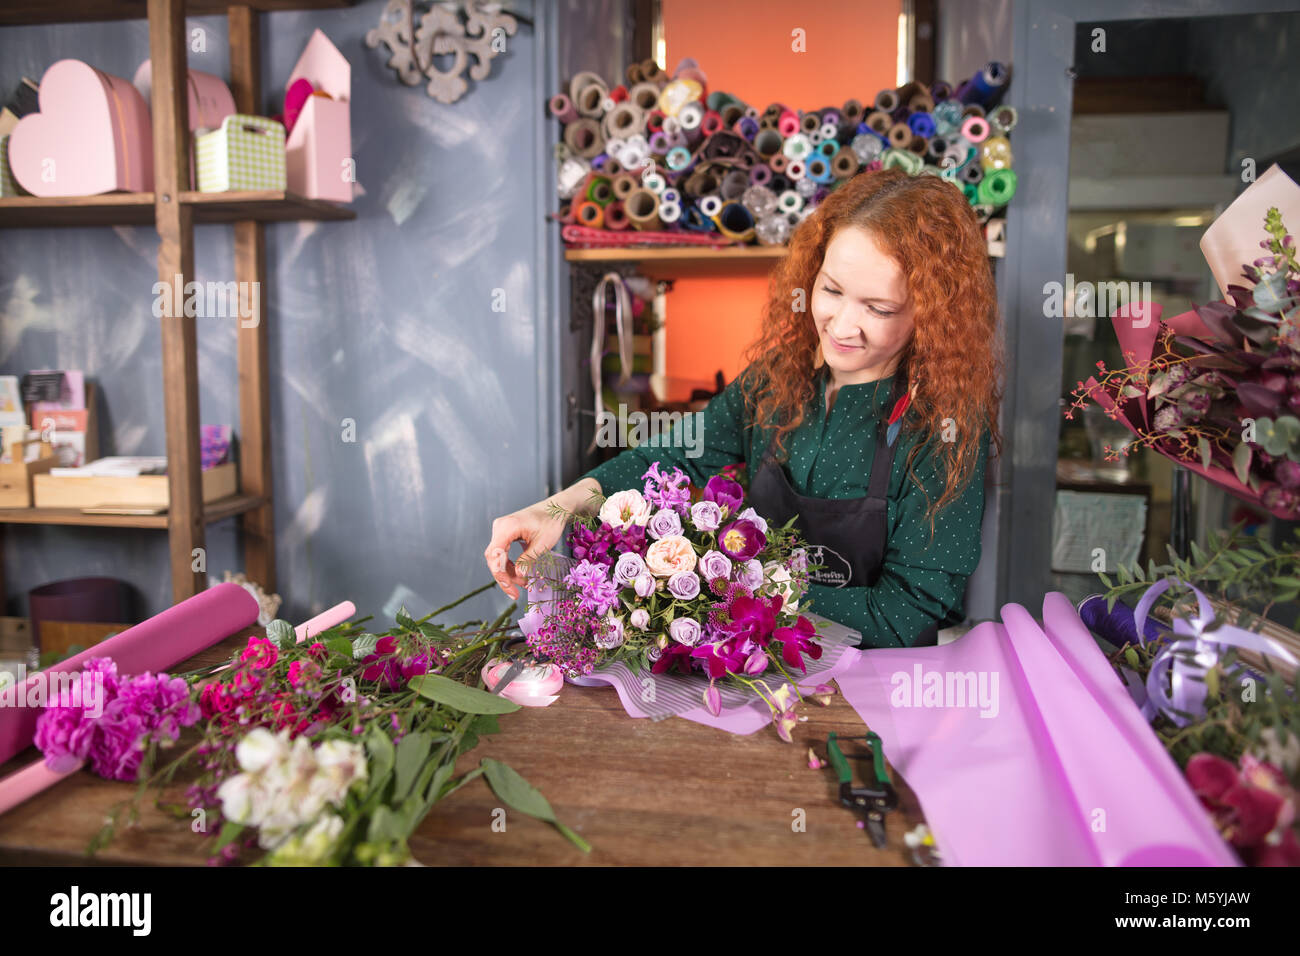 making up exquisite bouquet at flower shop Stock Photo